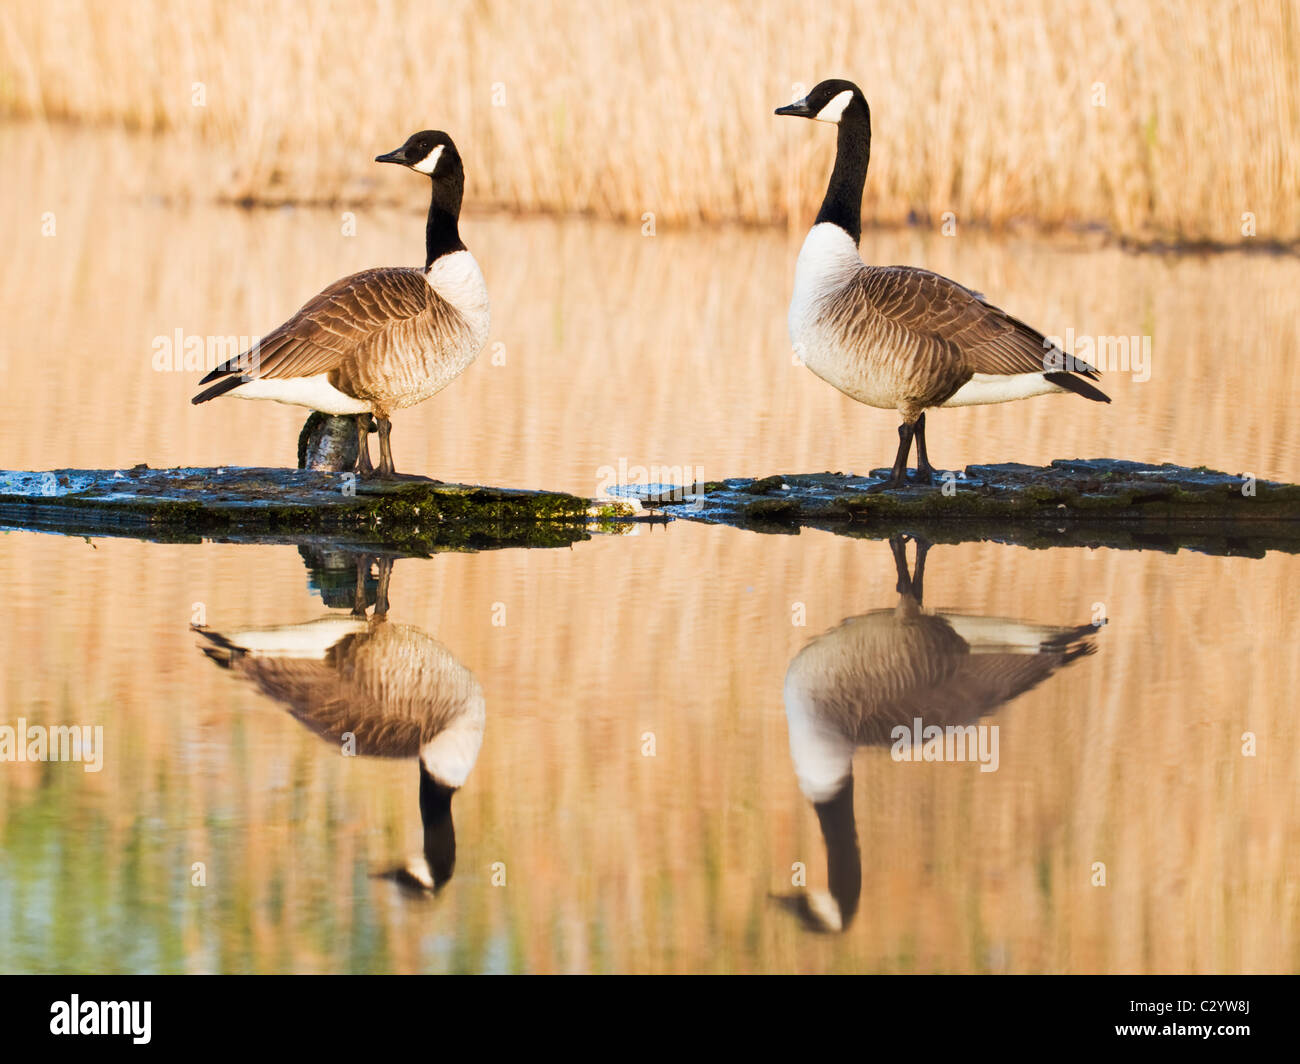 Canada geese casting their reflections onto calm water - Stock Image